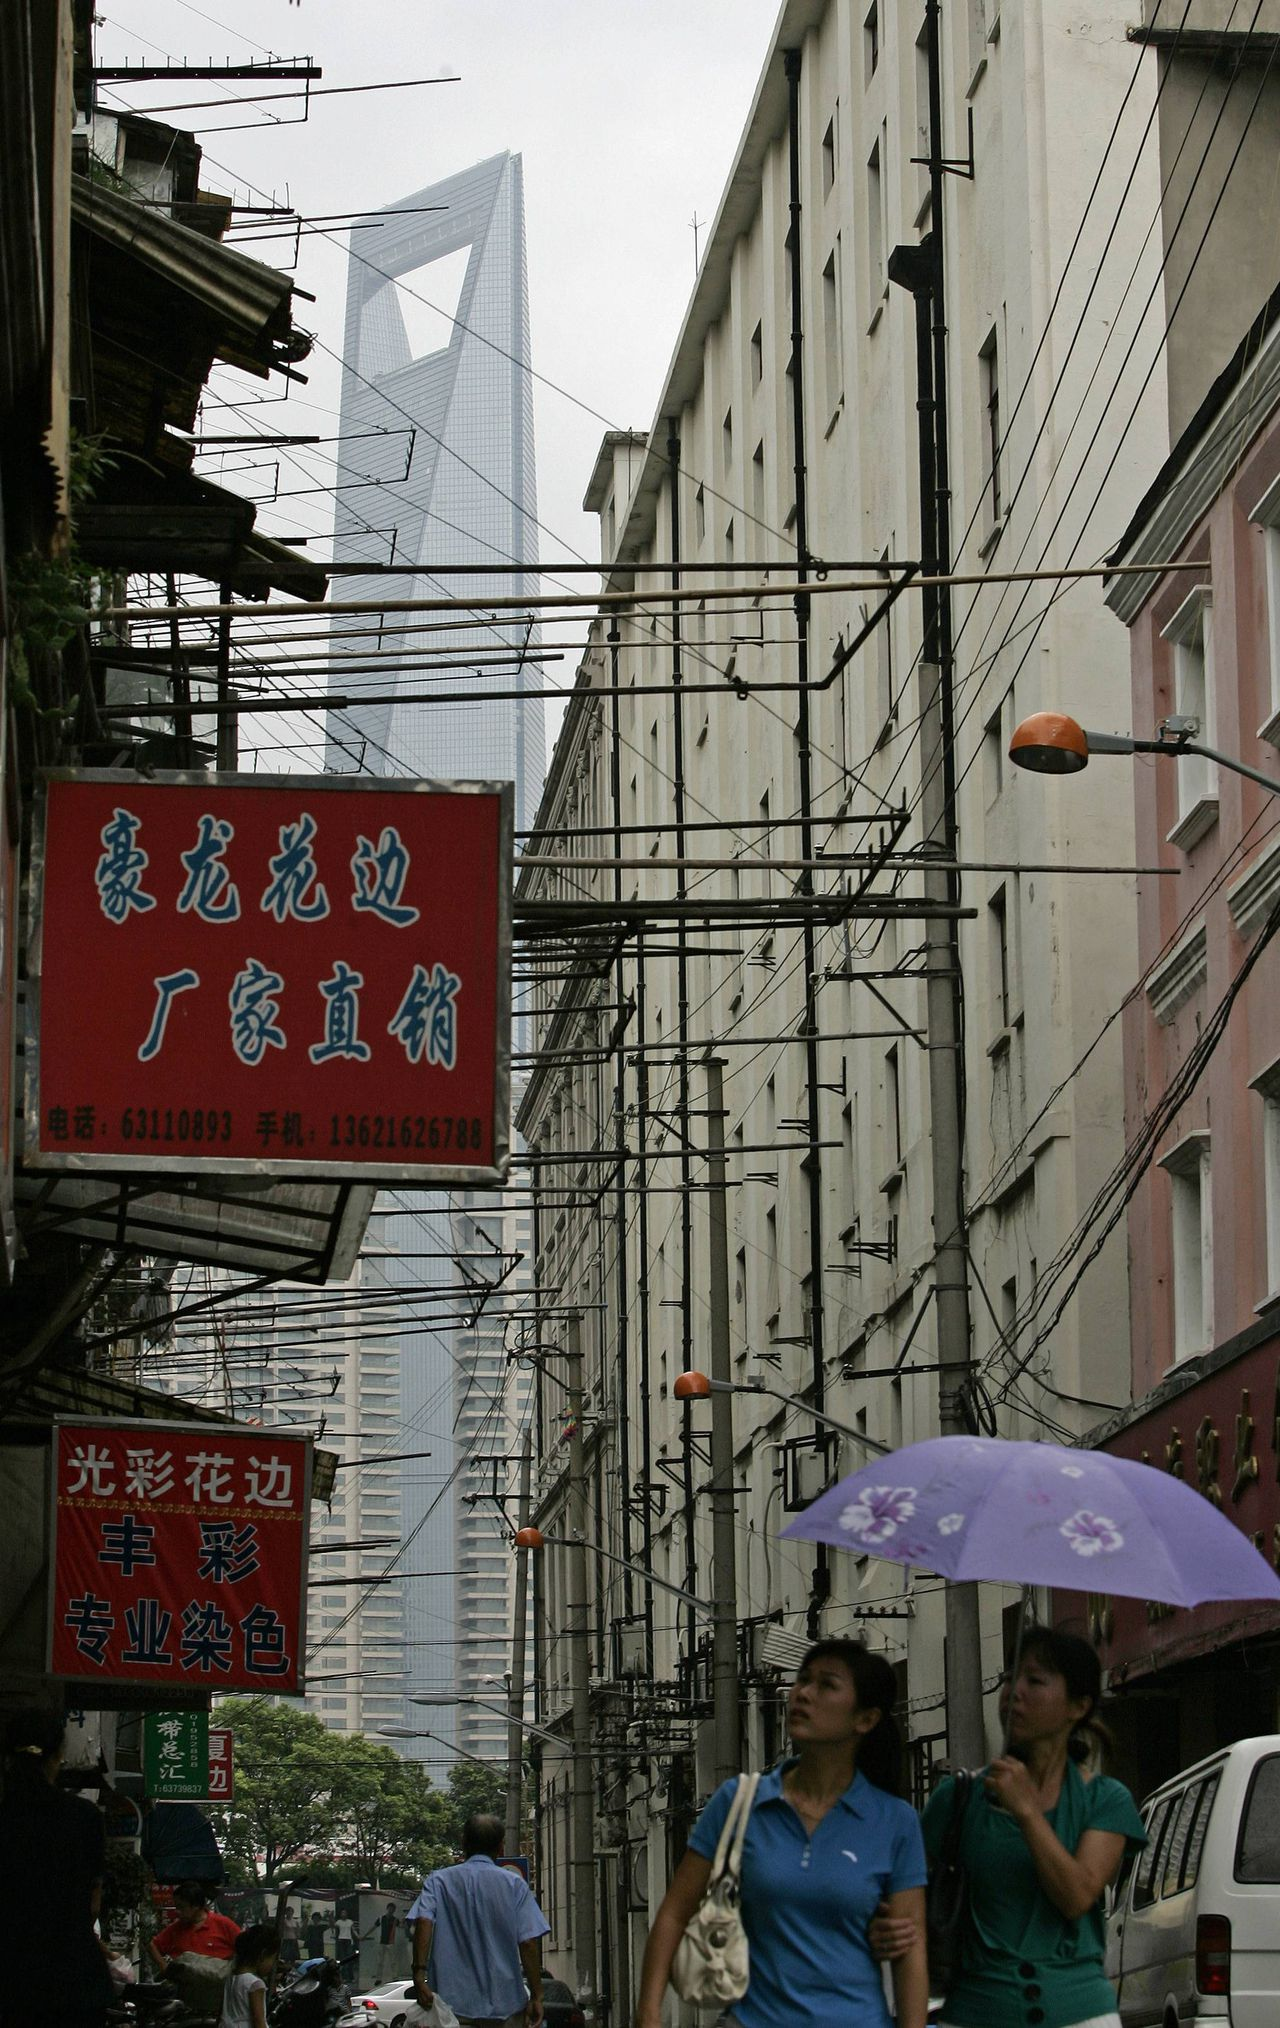 Shanghai World Financial Centre building in seen in the background as two women walk down an old alley, August 29, 2008. China's tallest building, the 492-metre (1,614-ft) Shanghai World Financial Centre, is on track to reach 90 percent occupancy within a year despite worries over the economy, its developer and top shareholder said on Thursday. REUTERS/Aly Song (CHINA)